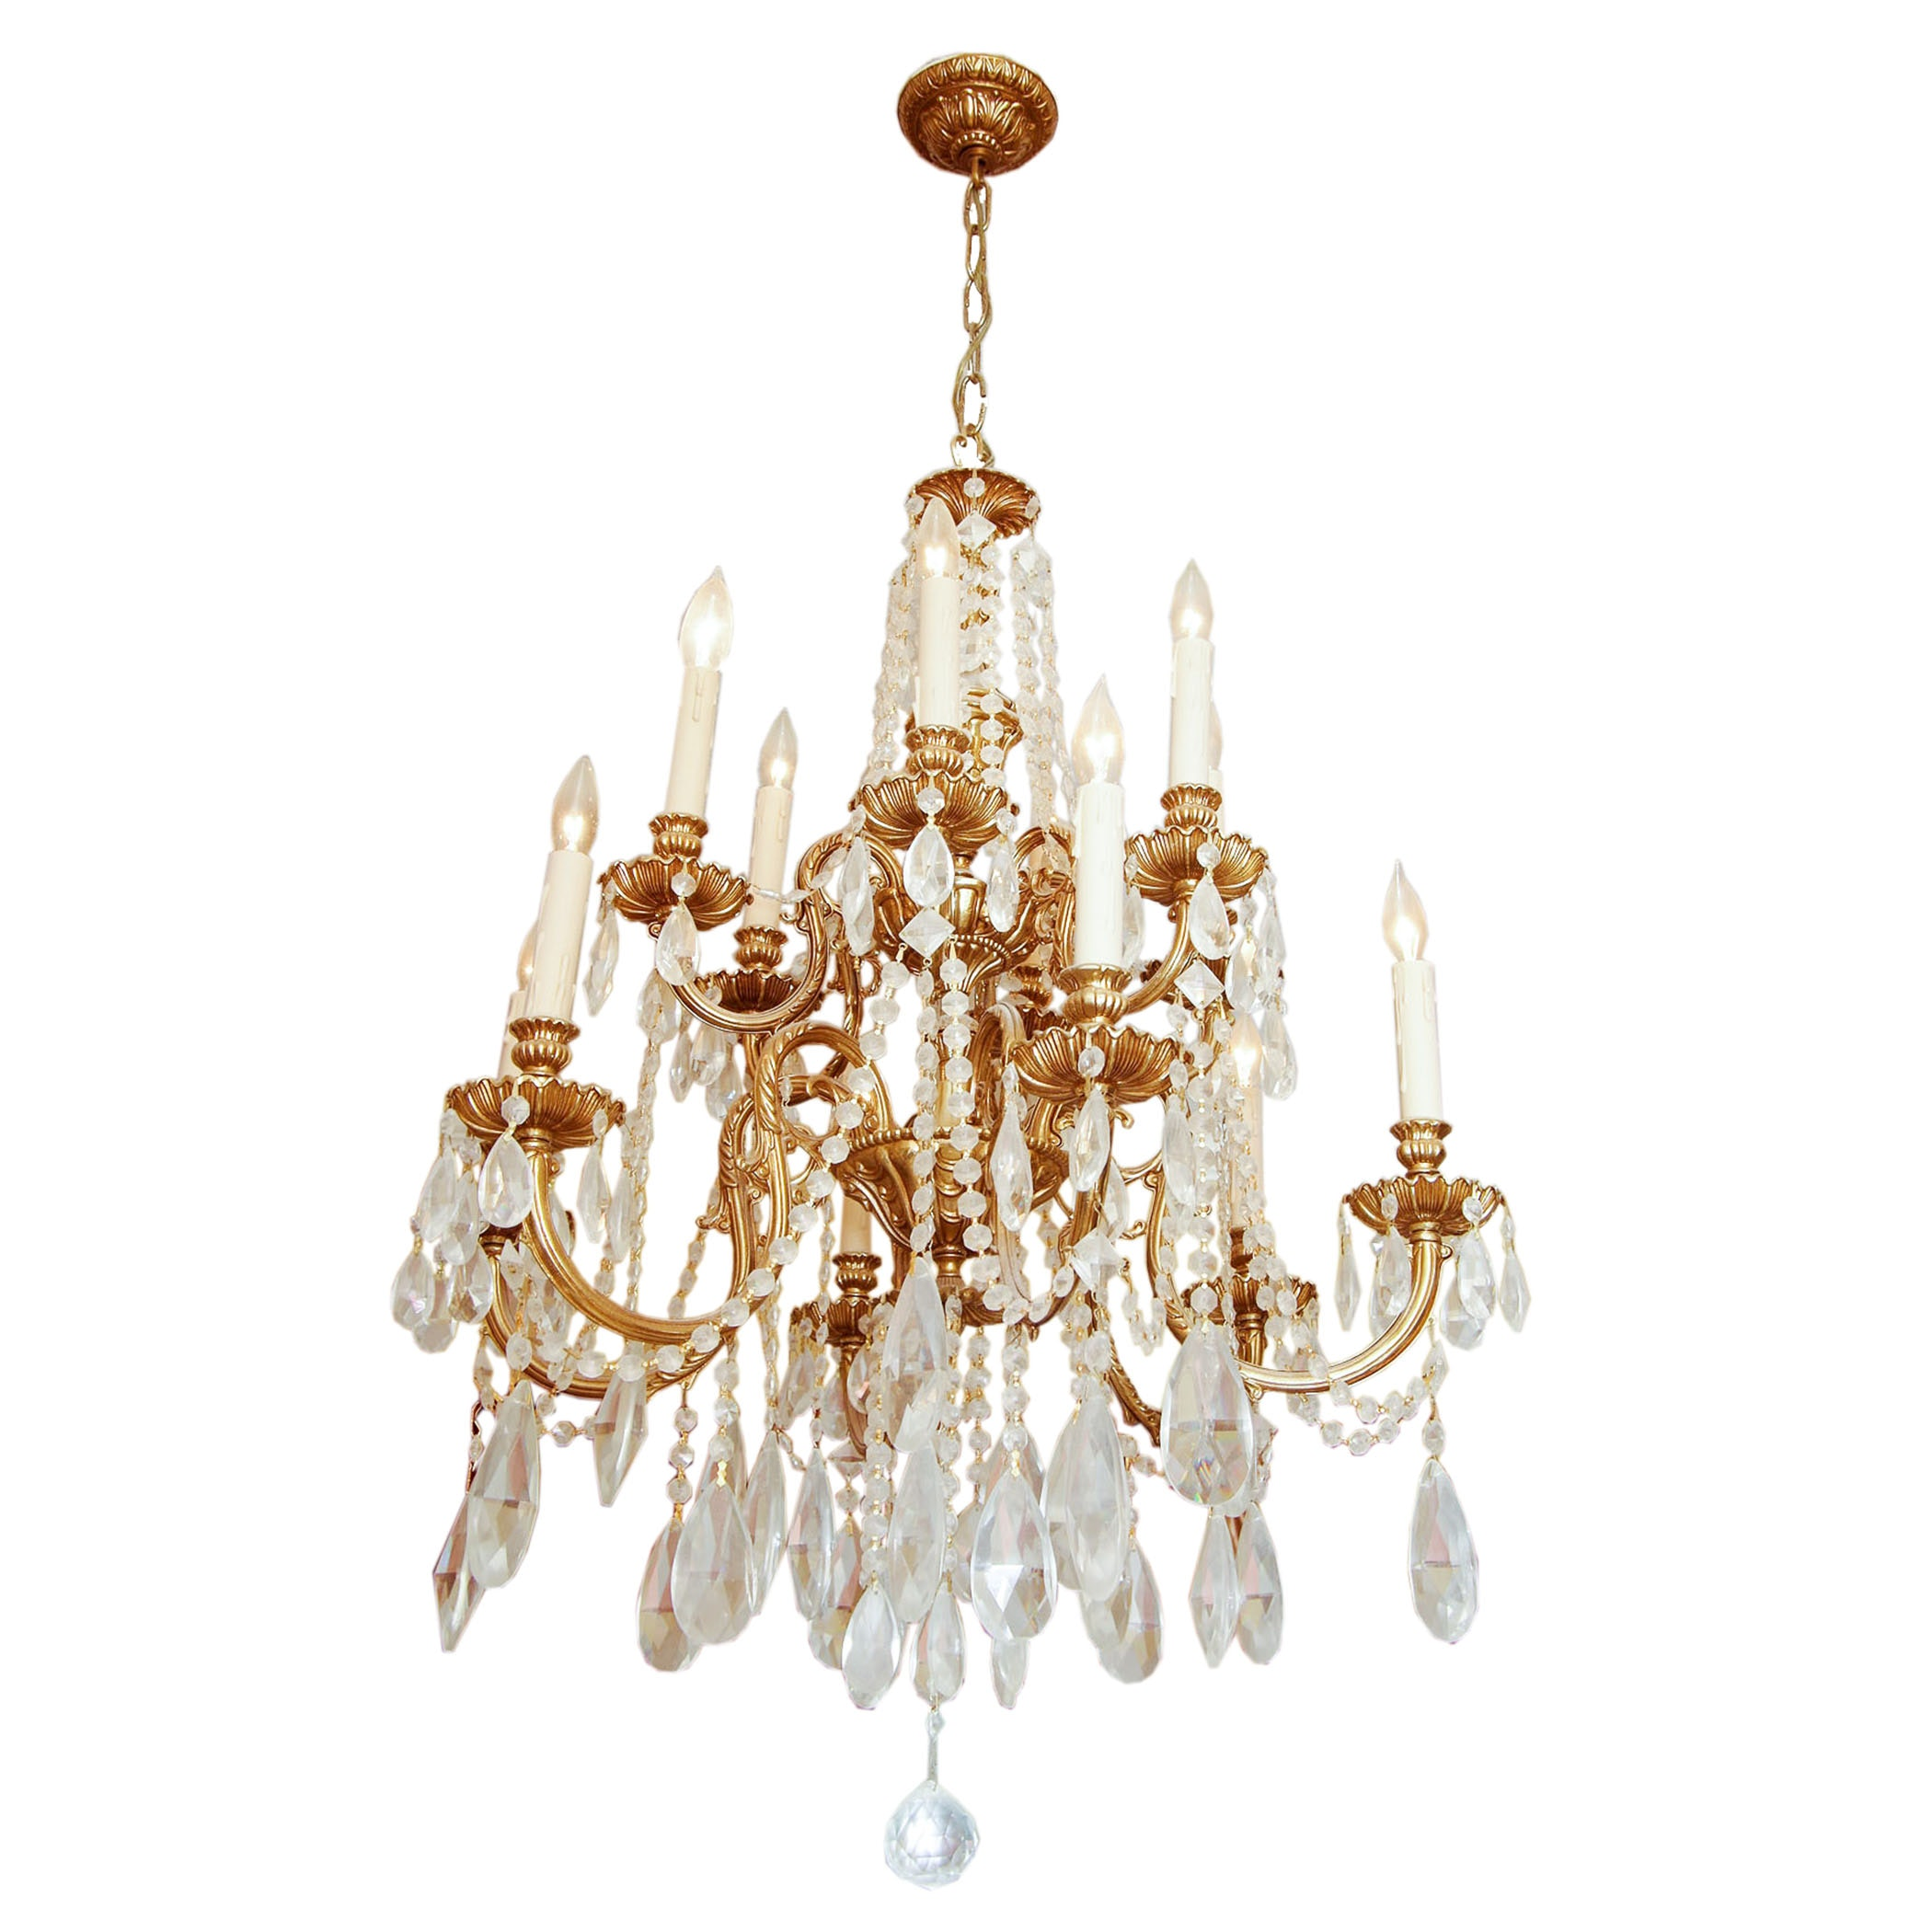 Gilded Chandelier with Crystal Drops